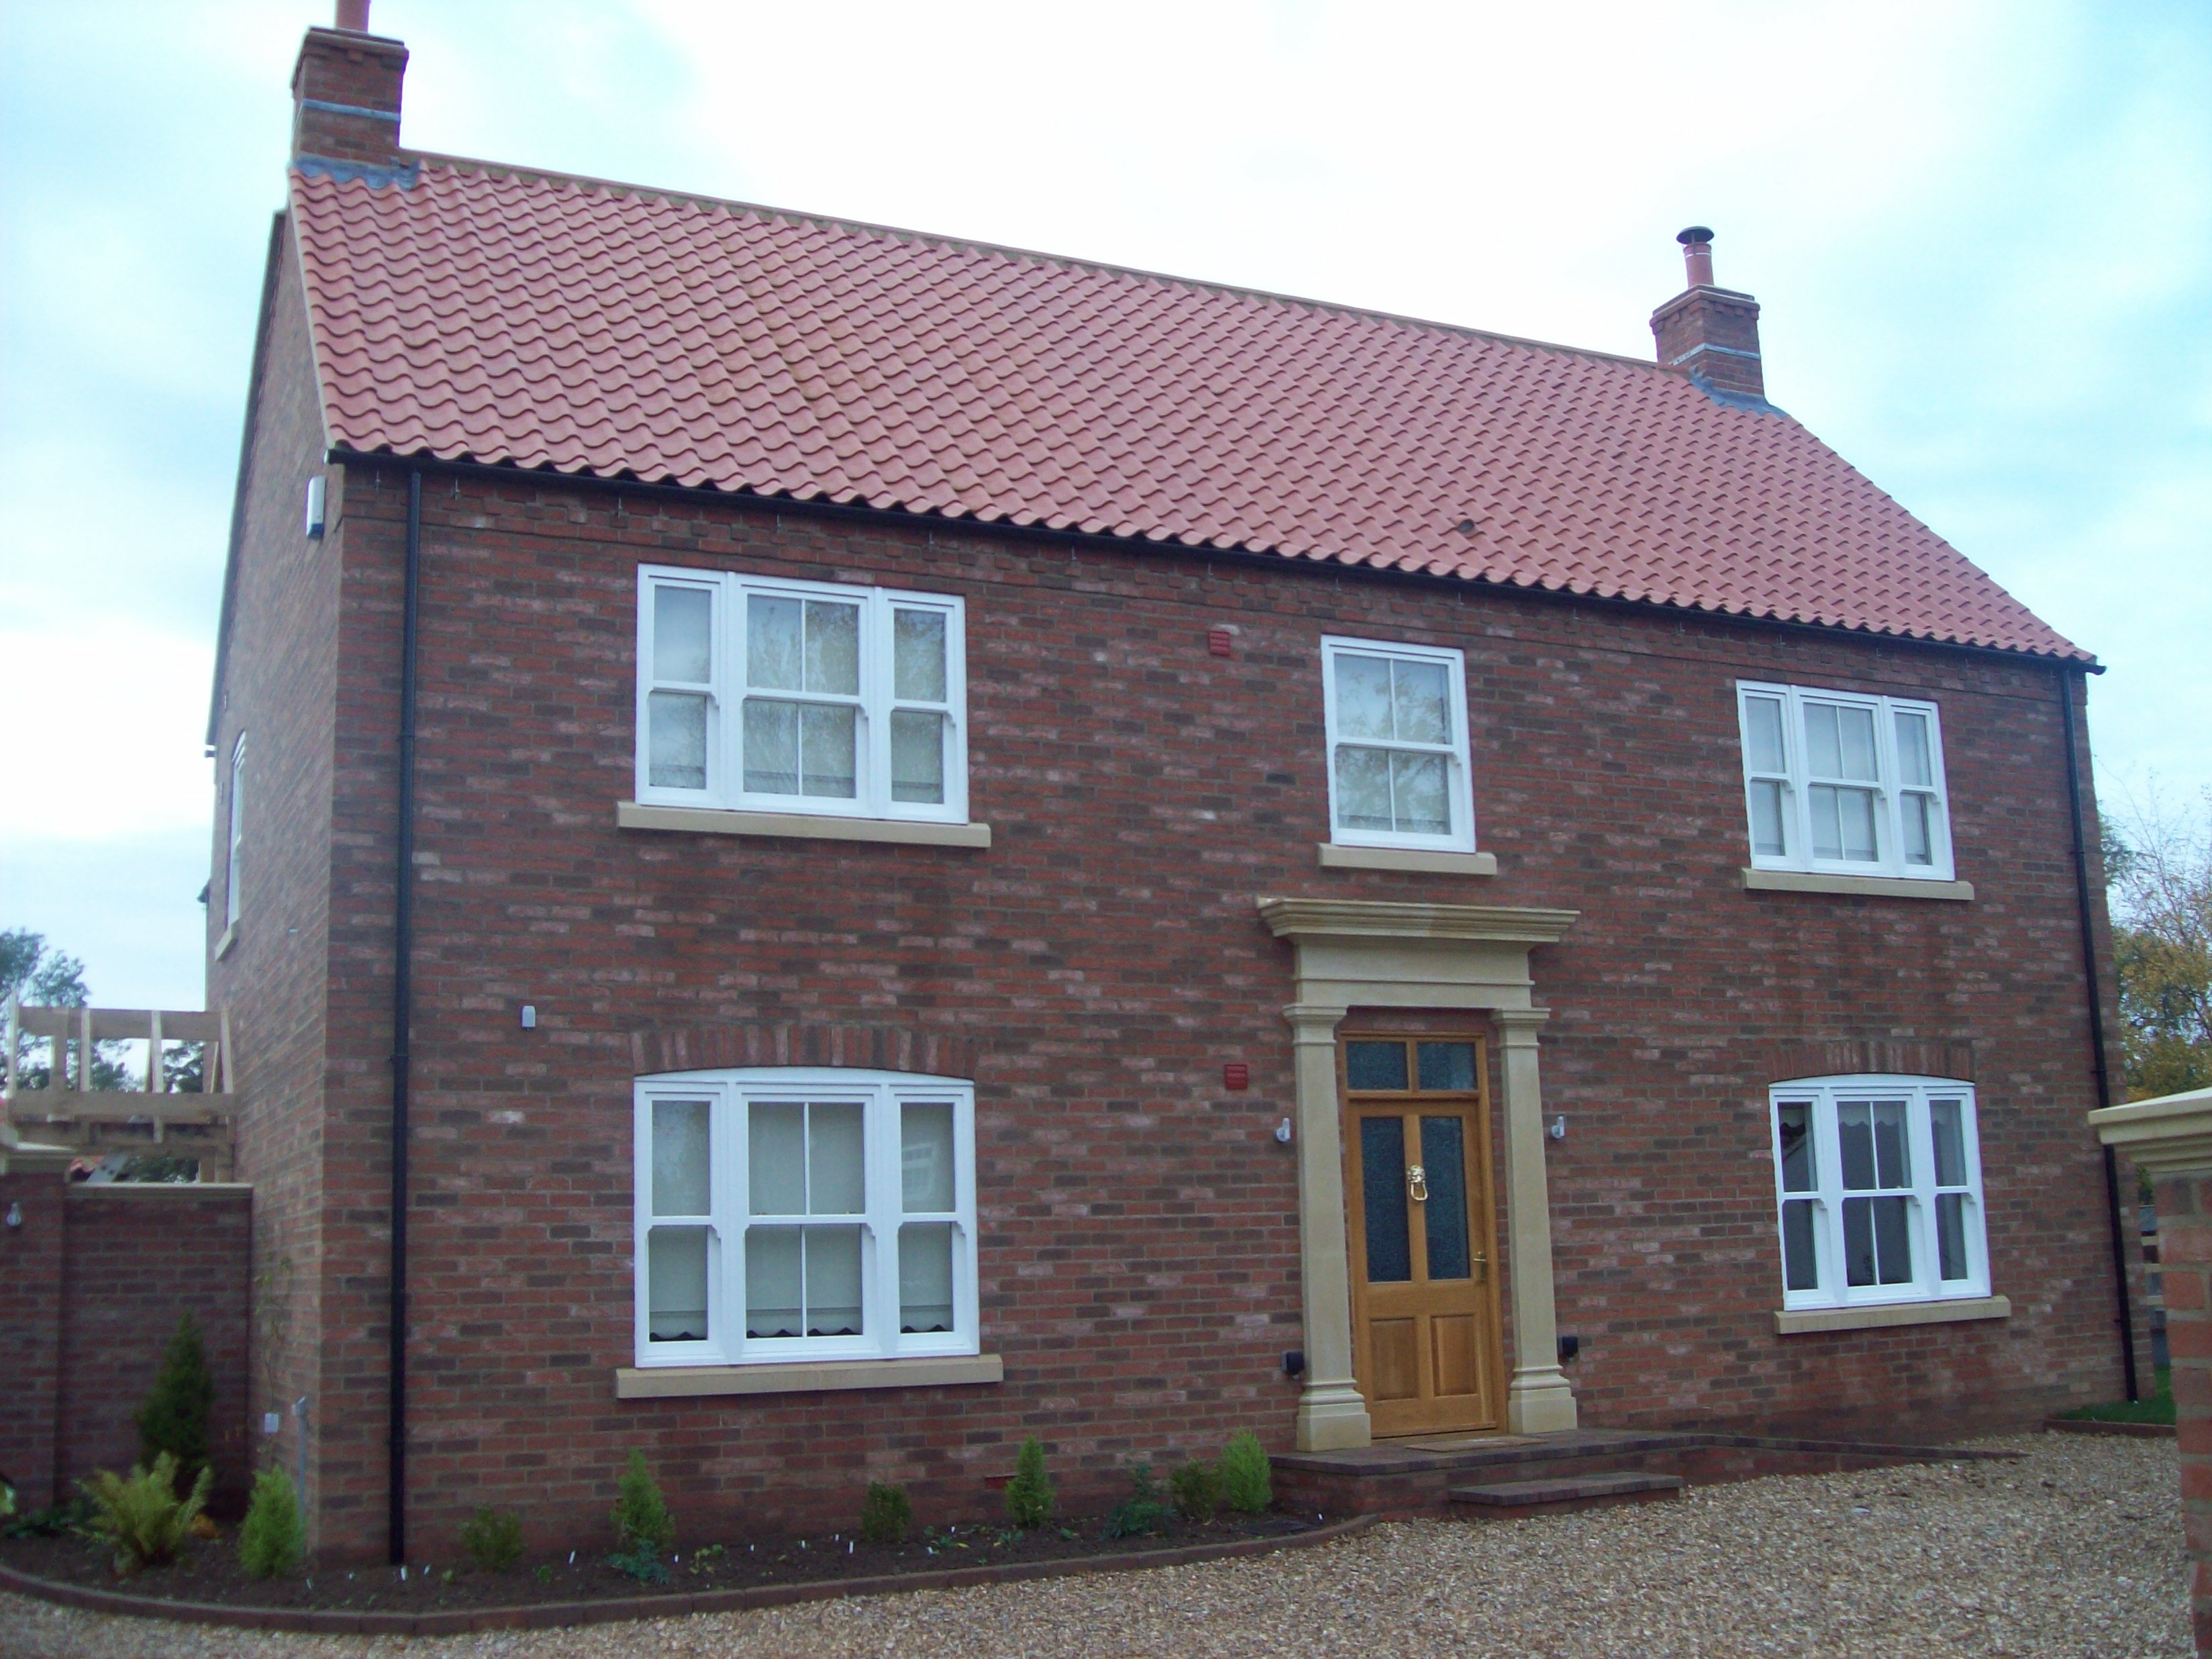 Architect services for new house in louth grimsby for 4 bed new build house